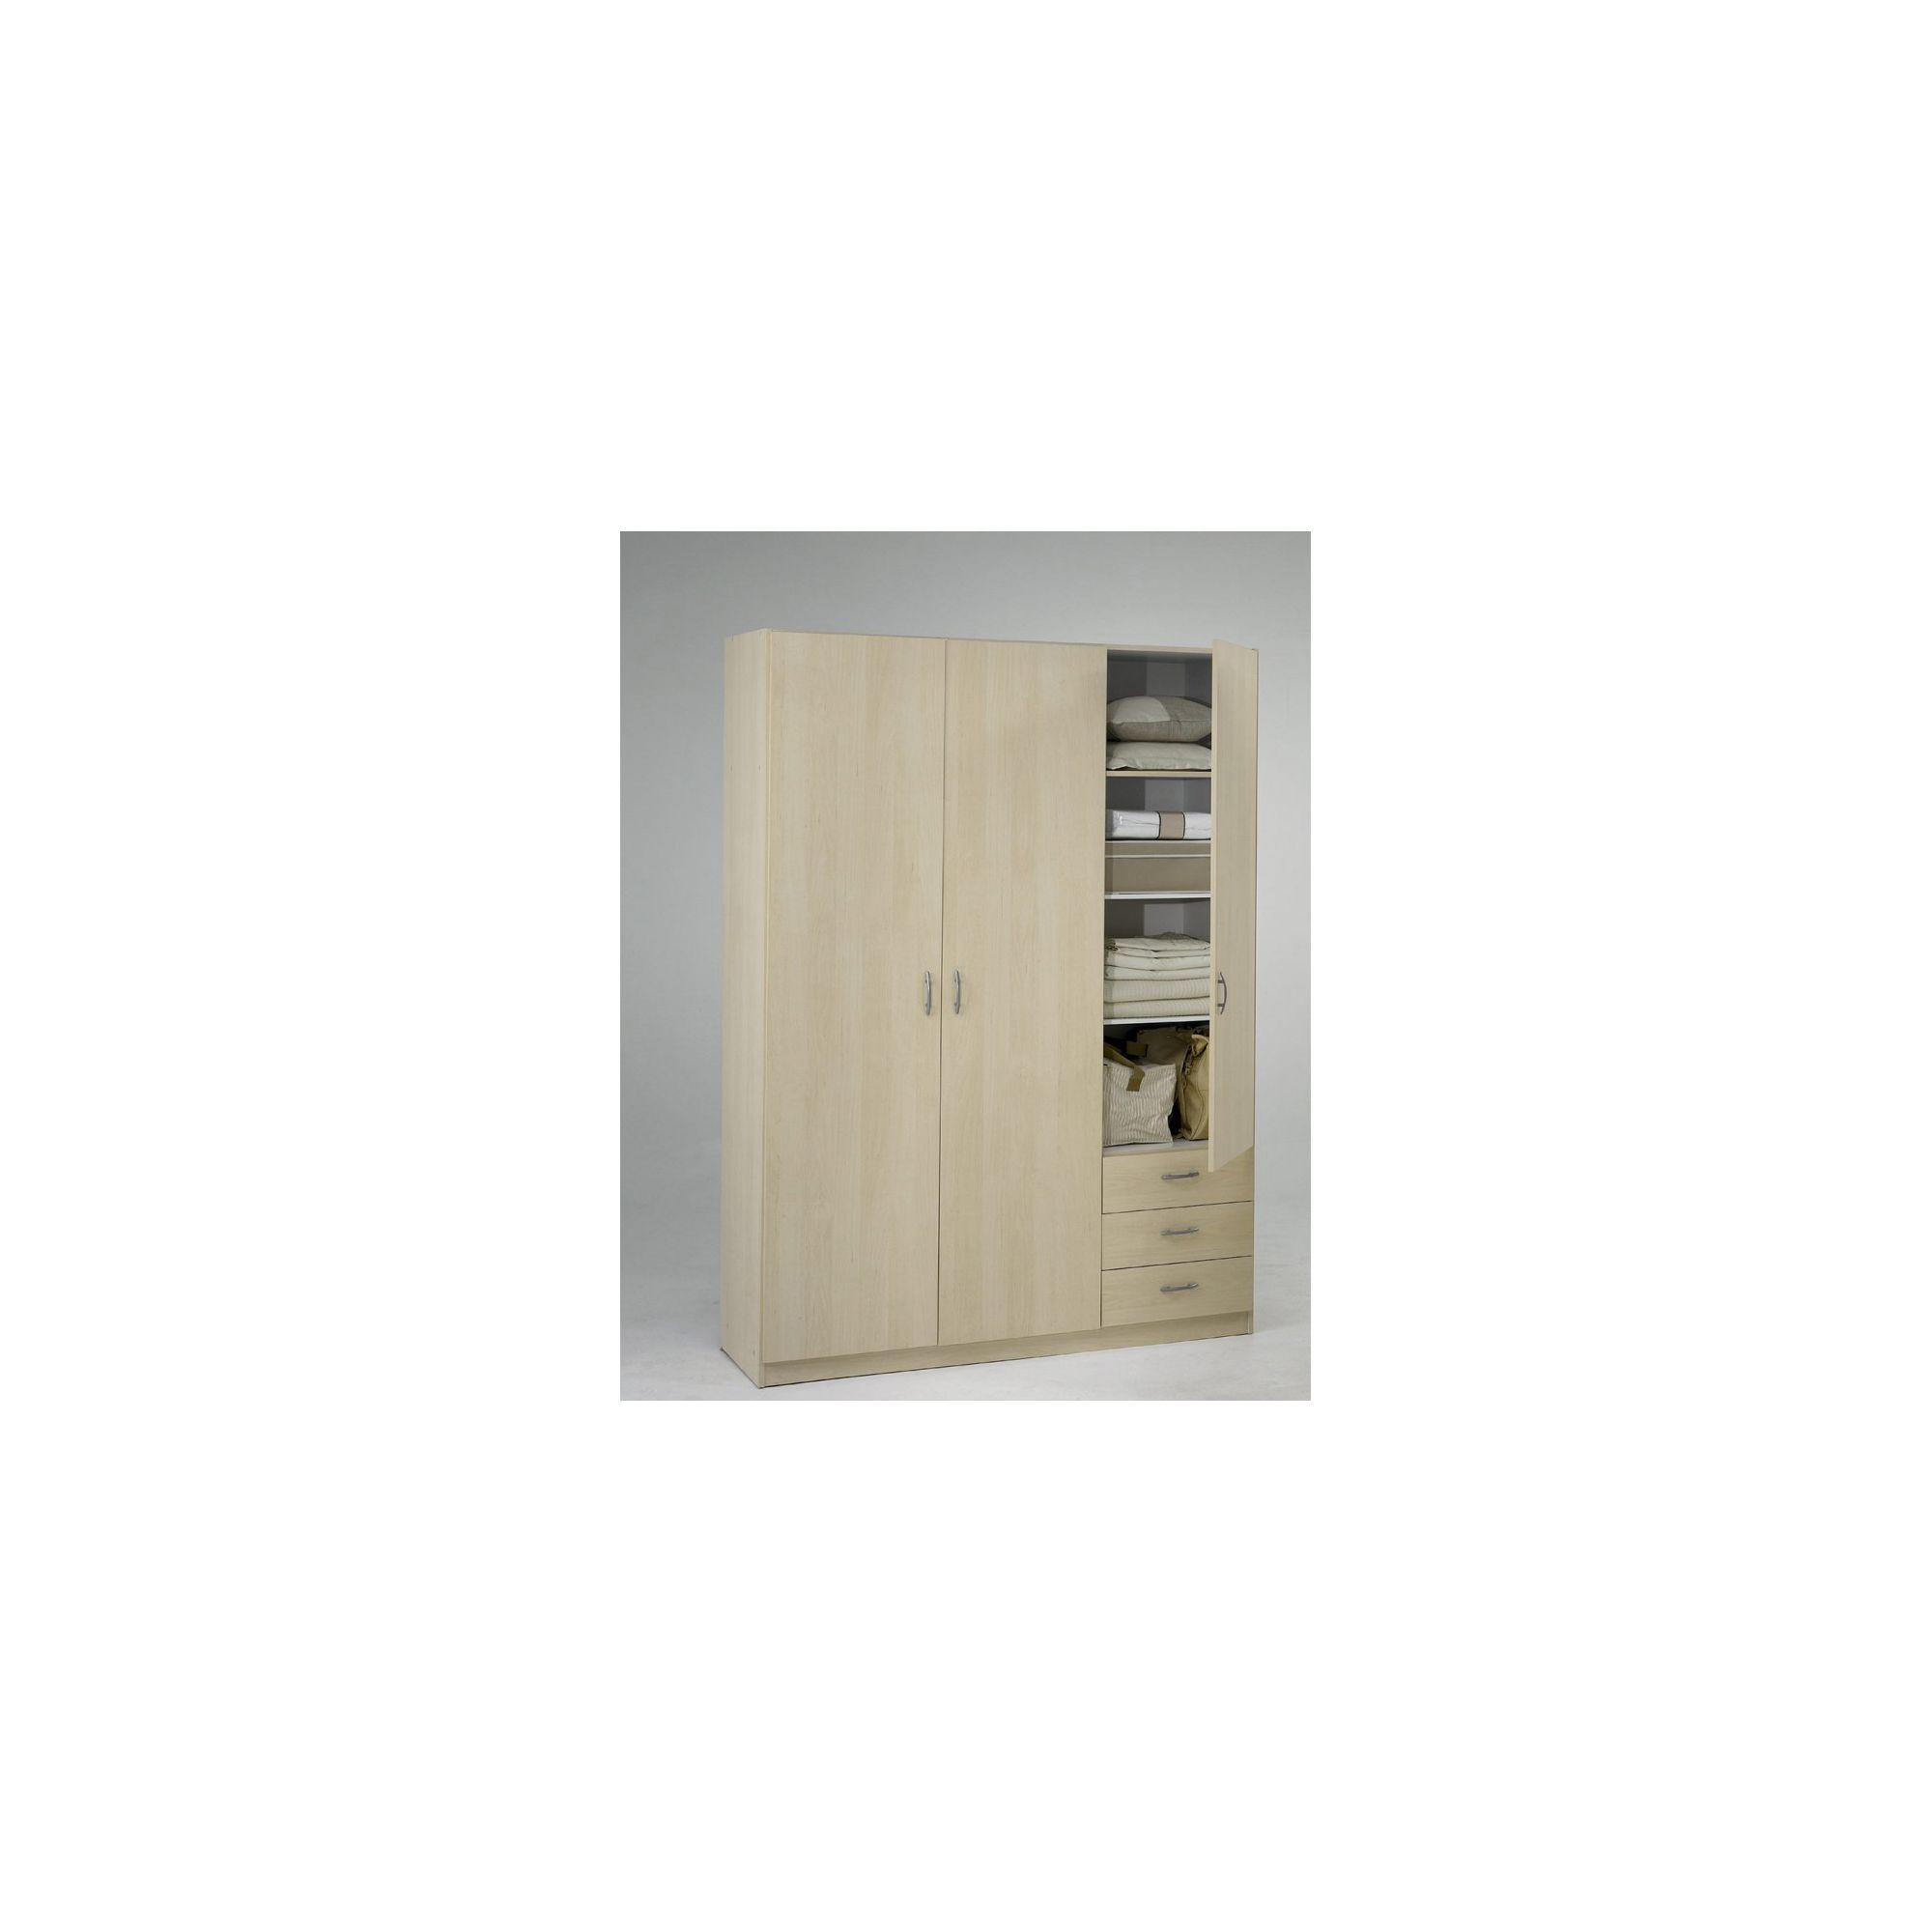 Tvilum Focus Three Drawer Wardrobe - Light Maple at Tesco Direct